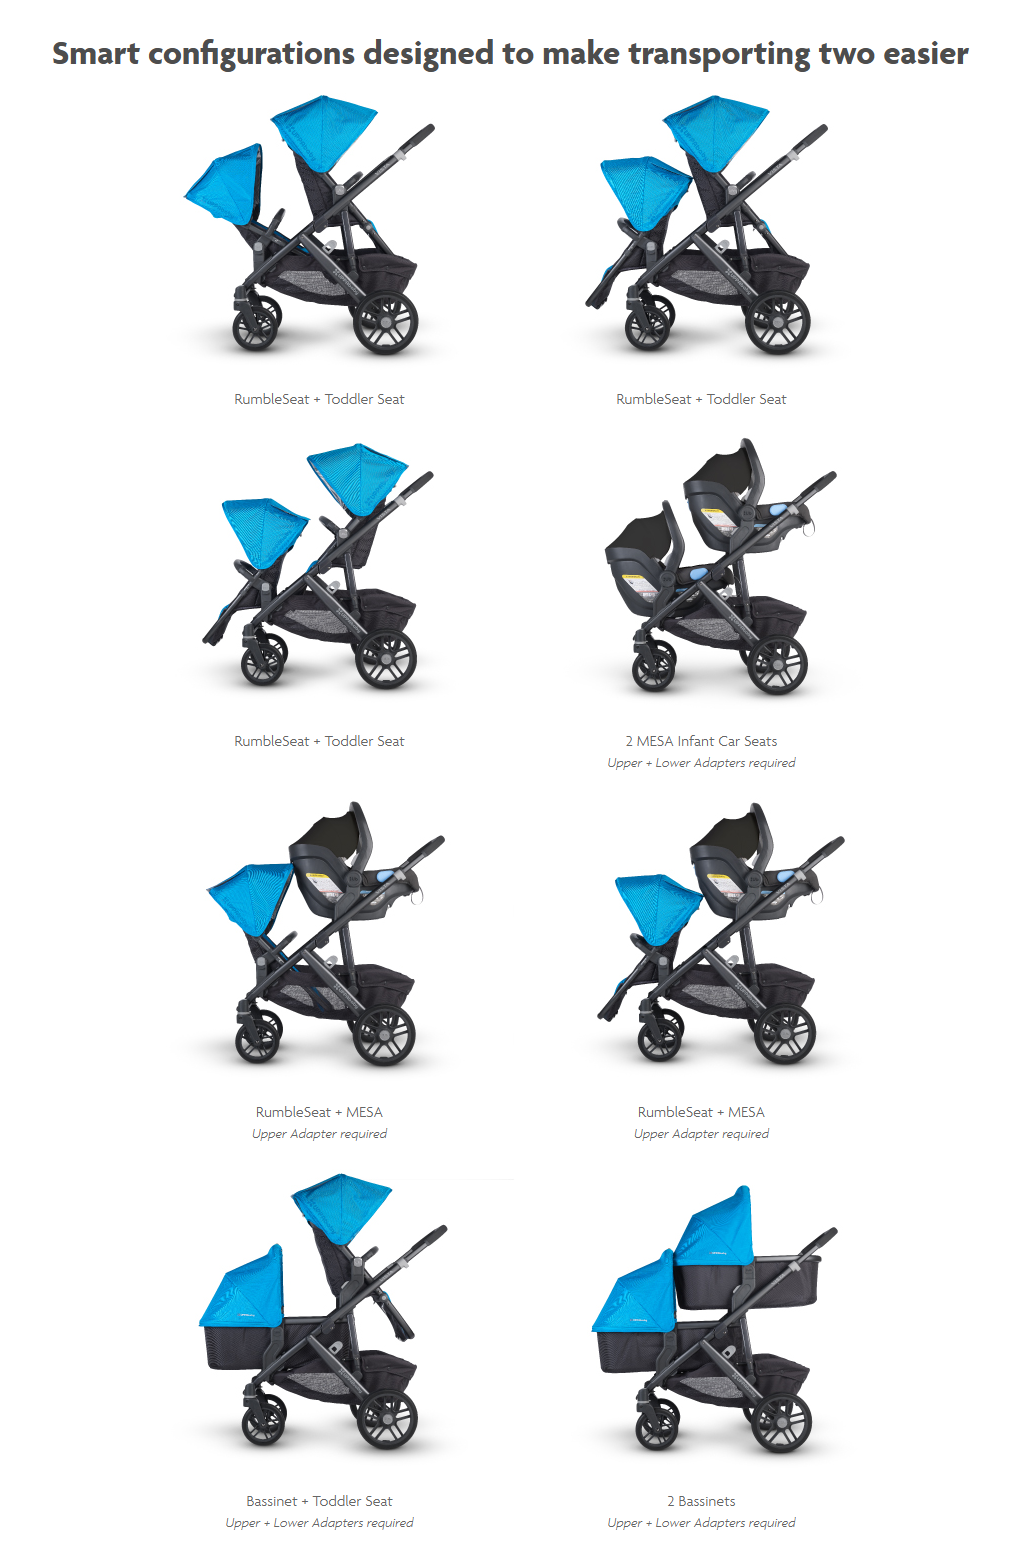 Albee Baby Coupon Codes, Promos & Sales. Want the best Albee Baby coupon codes and sales as soon as they're released? Then follow this link to the homepage to check for the latest deals.